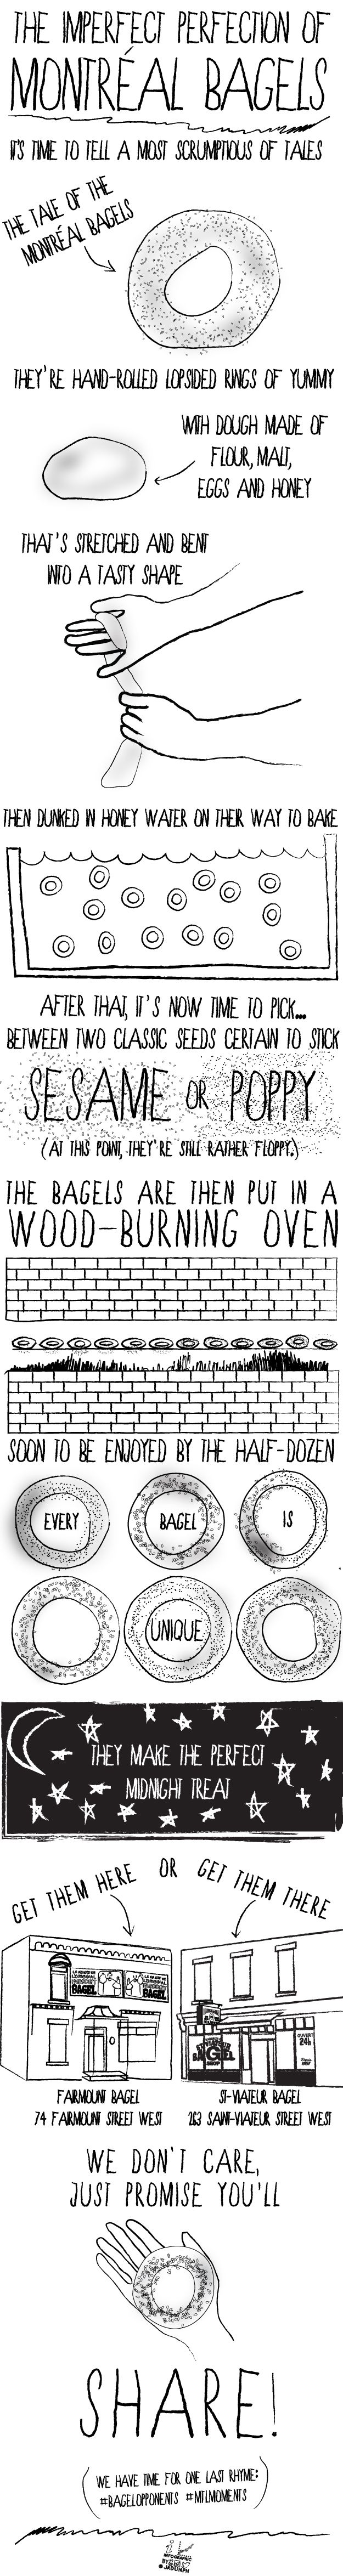 A delightful Infocomic about #Montreal's incredible bagels http://www.tourisme-montreal.org/blog/a-delightful-infocomic-about-montreals-incredible-bagels/